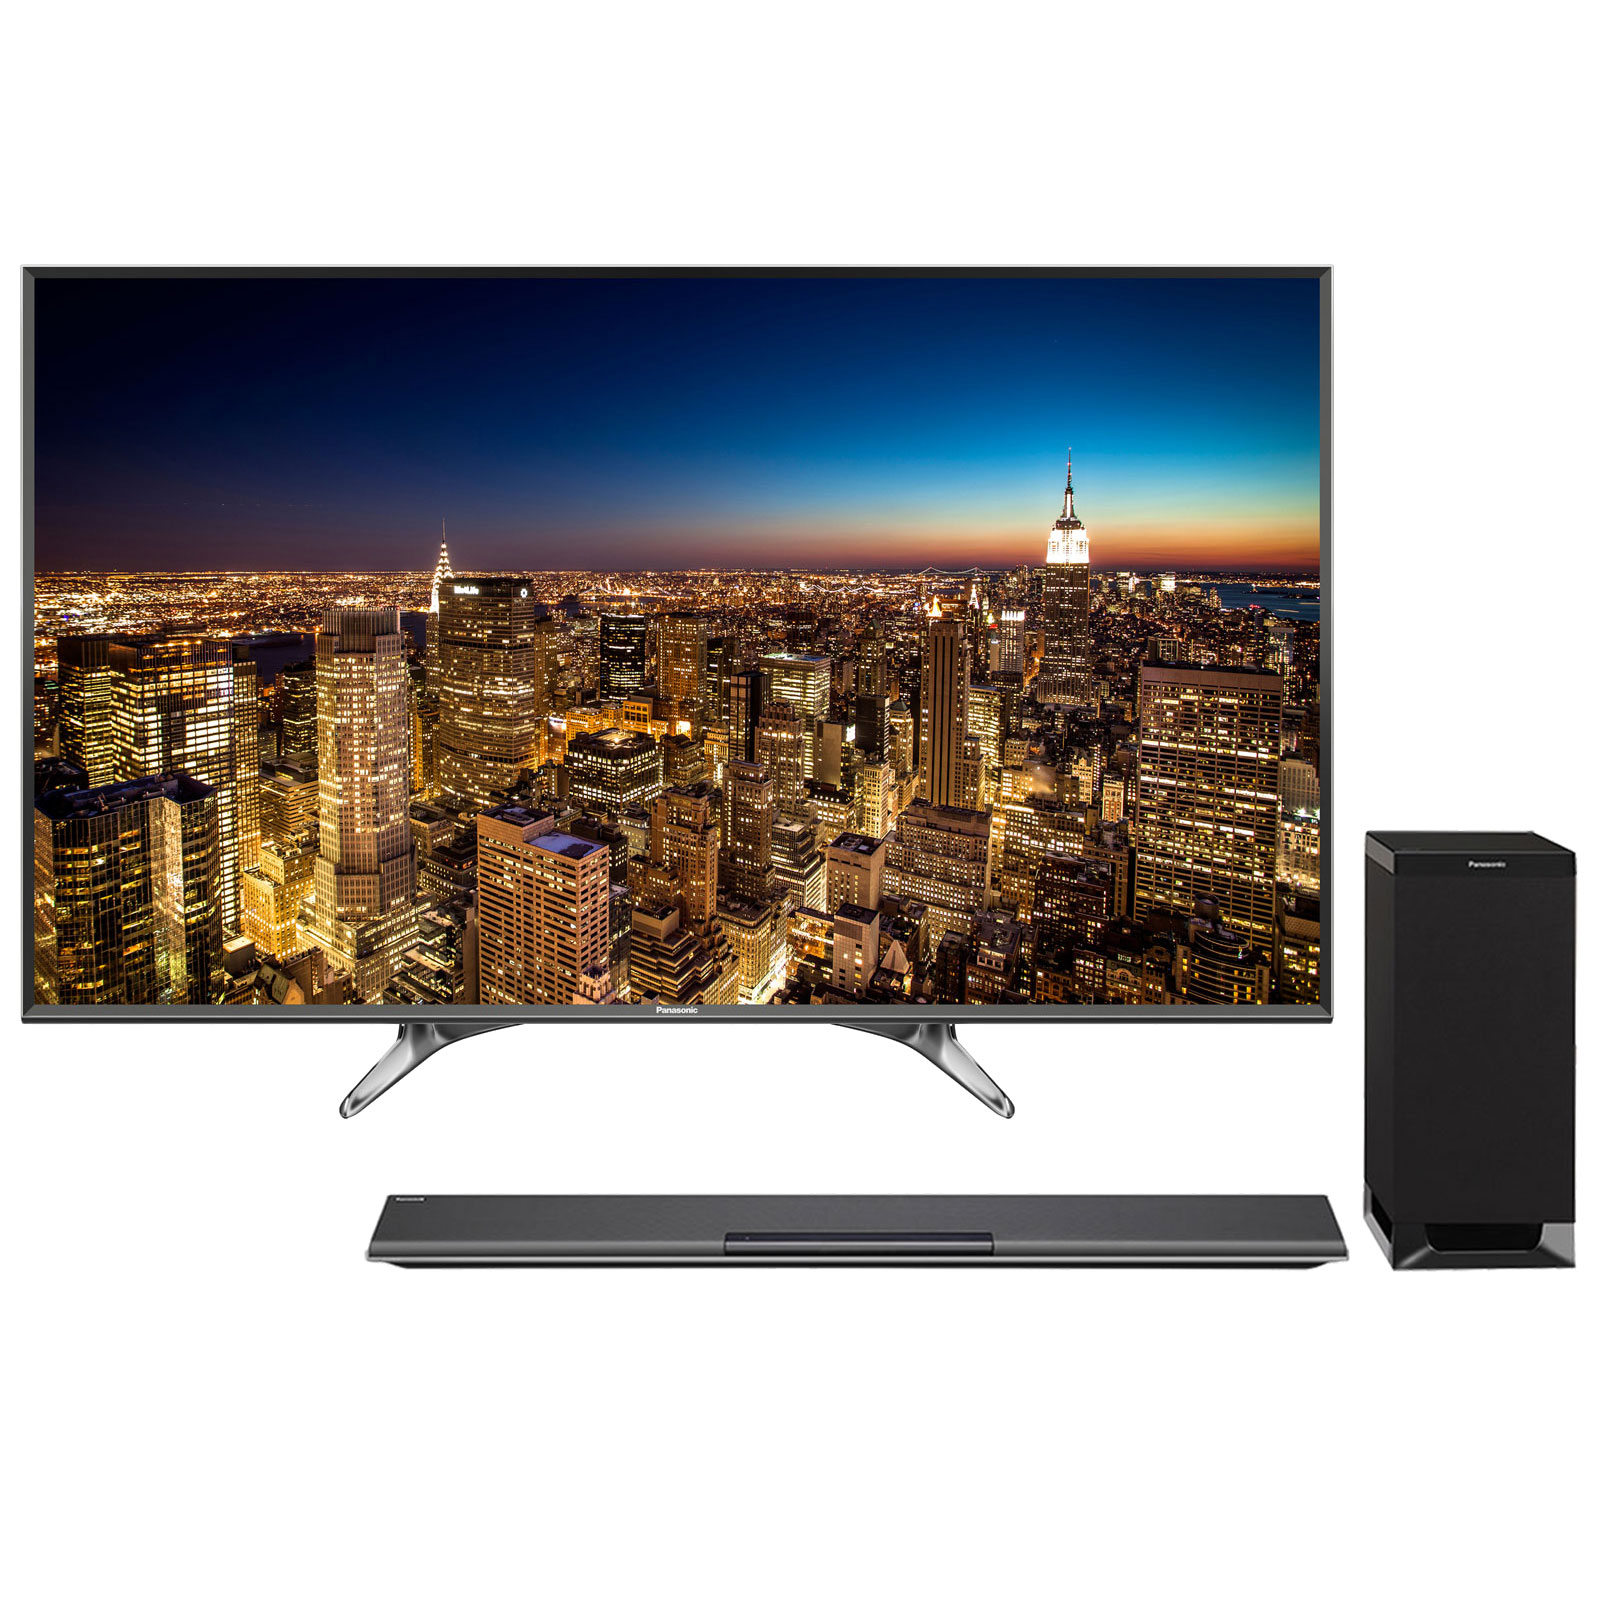 panasonic tx 55dx600e panasonic sc htb485eg k tv panasonic sur. Black Bedroom Furniture Sets. Home Design Ideas